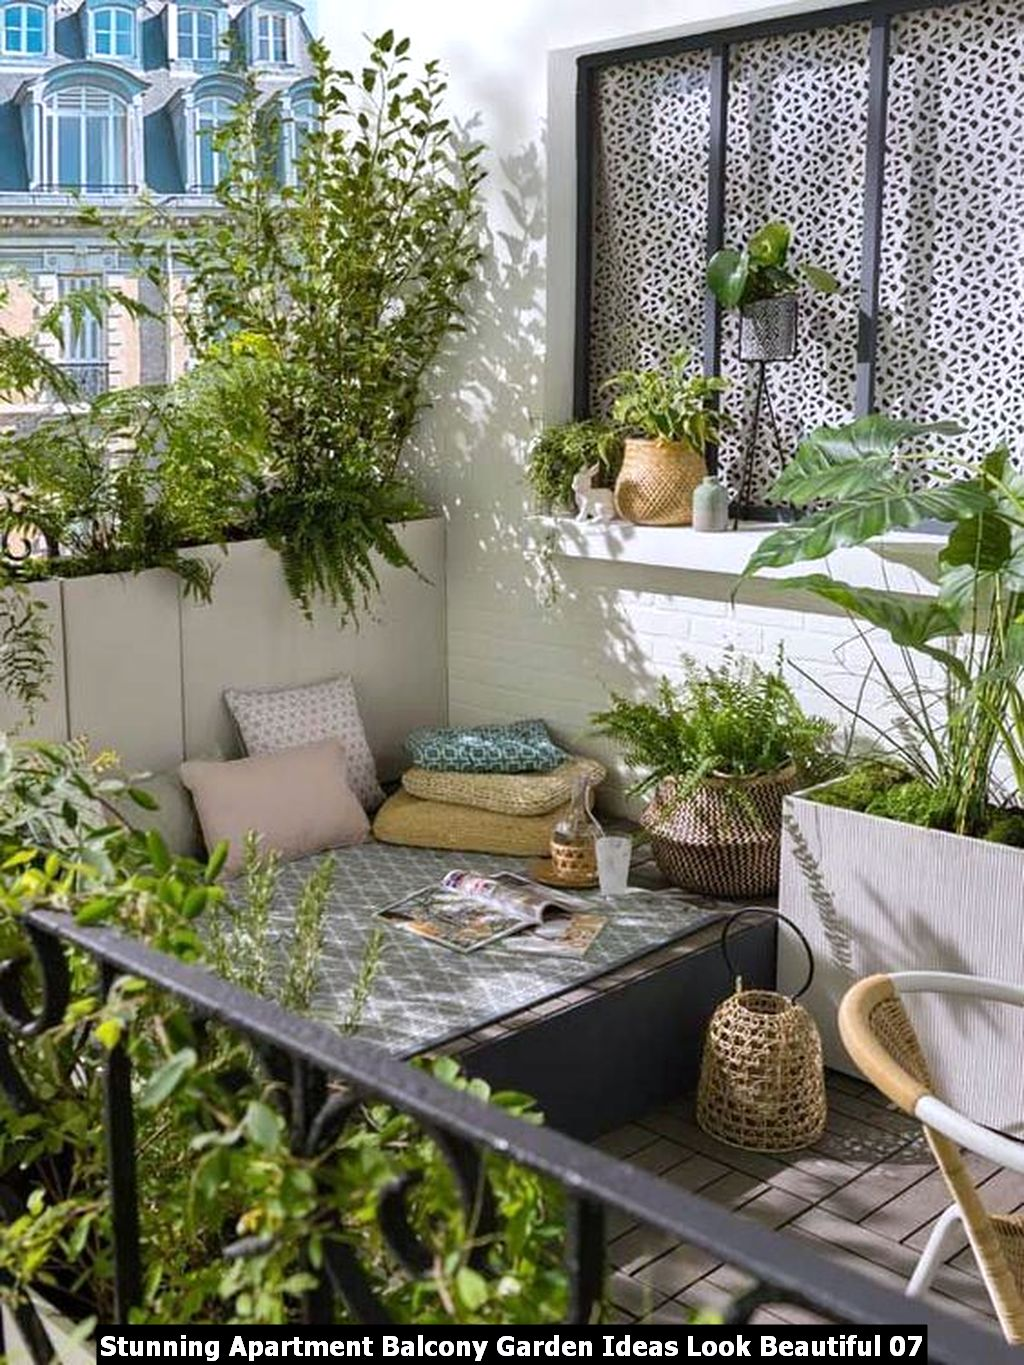 Stunning Apartment Balcony Garden Ideas Look Beautiful 07